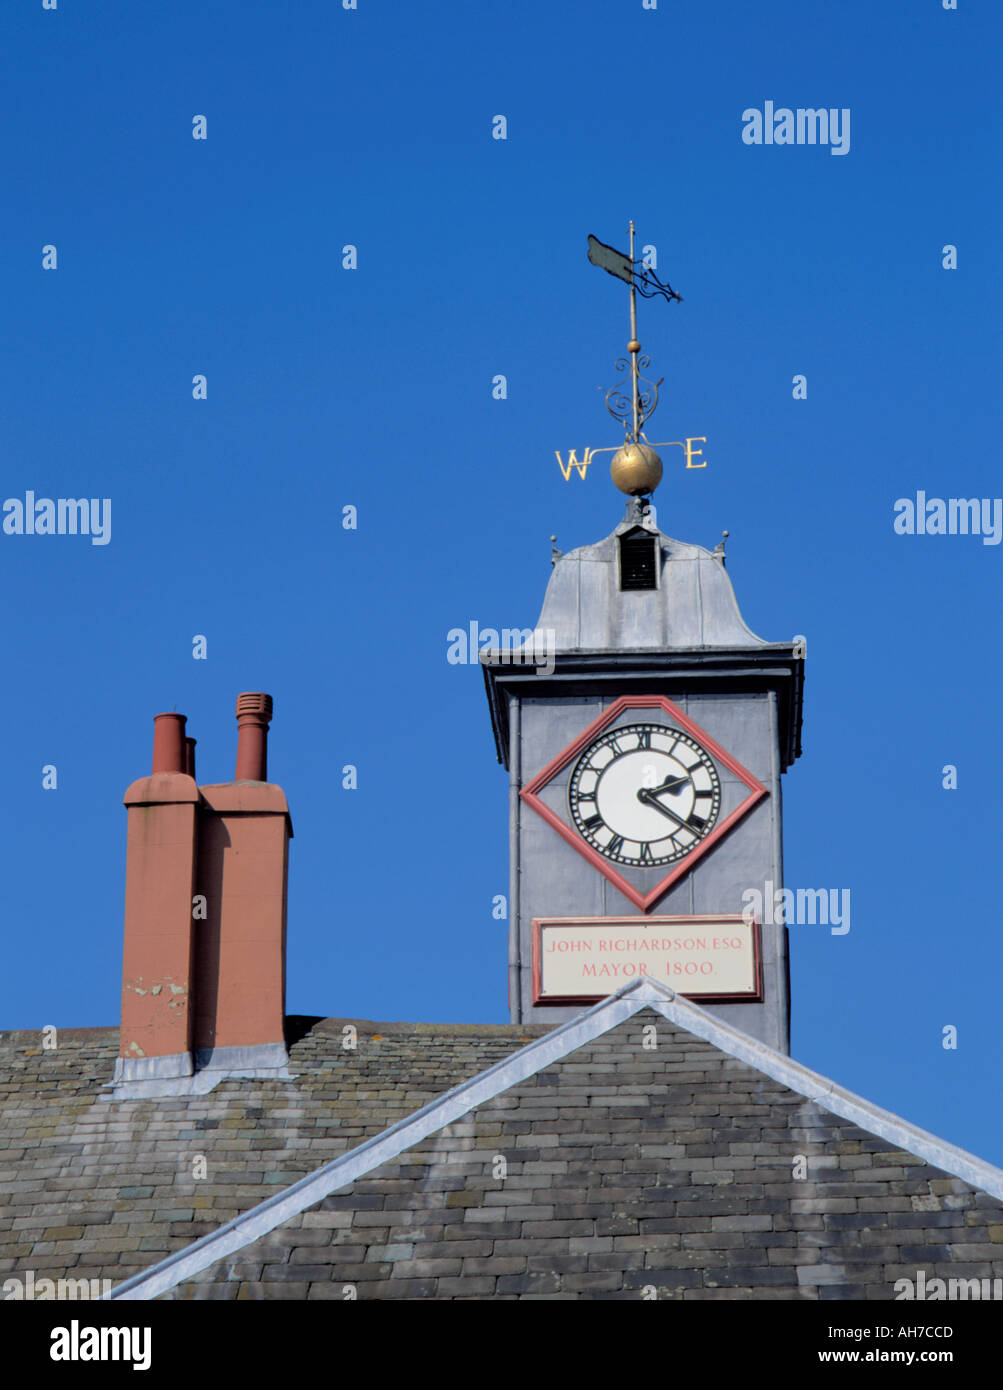 Lead faced and roofed clock tower of the 18th century Old Town Hall, Carlisle, Cumbria, England, UK. - Stock Image